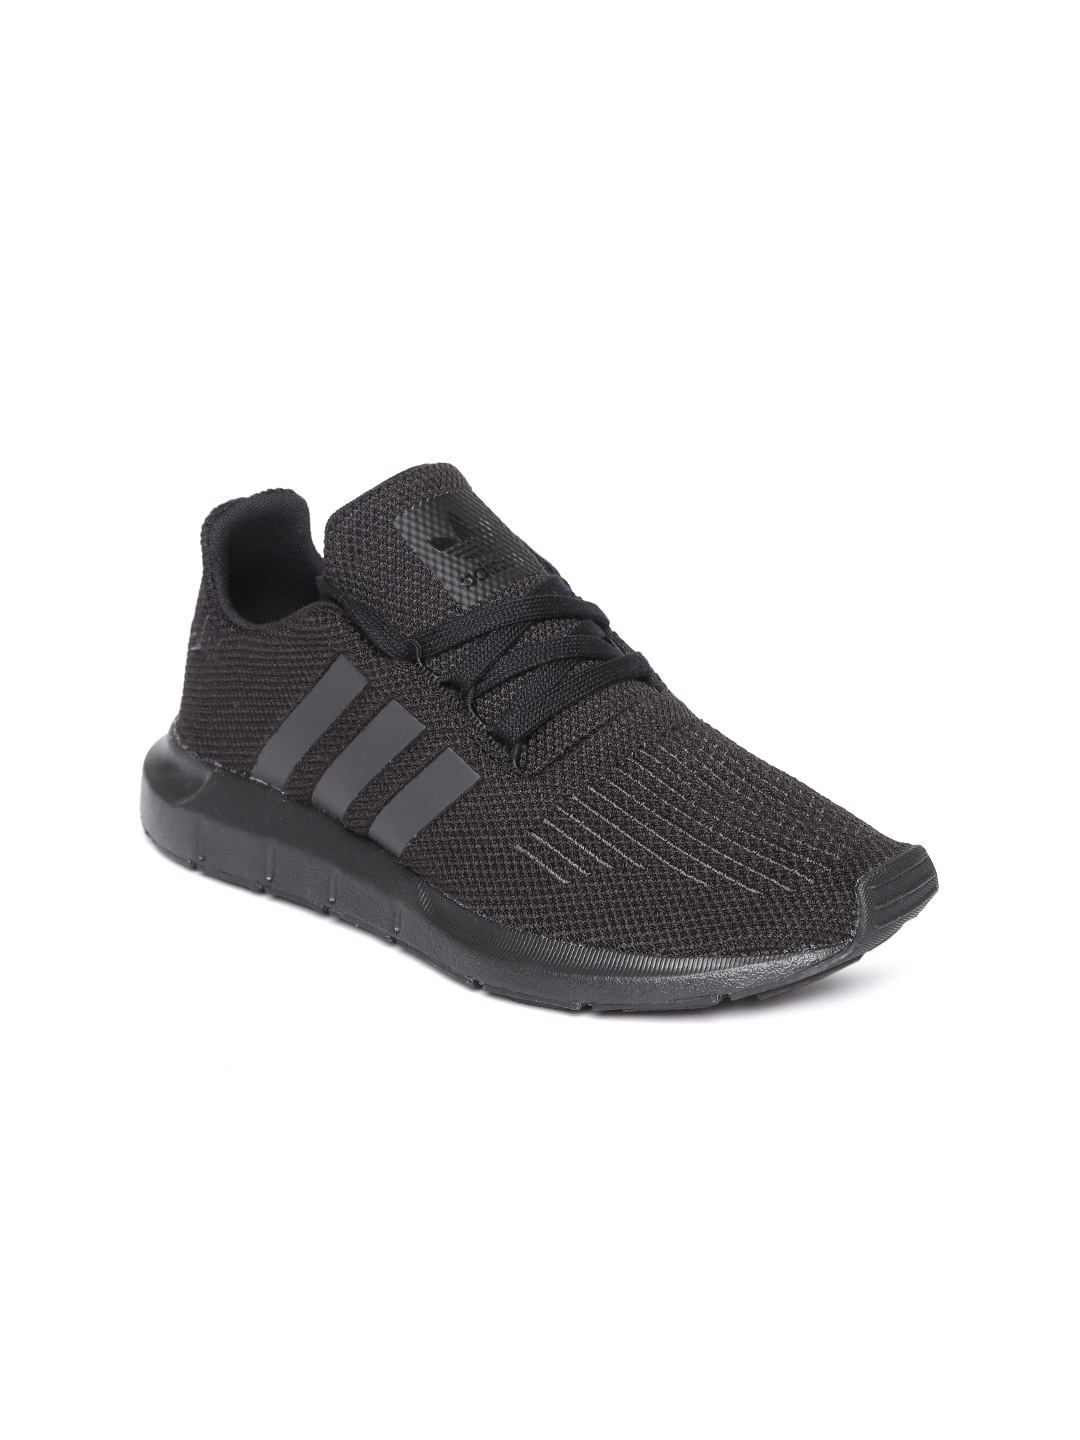 b2a3f5a016c Swift Shoes - Buy Swift Shoes online in India